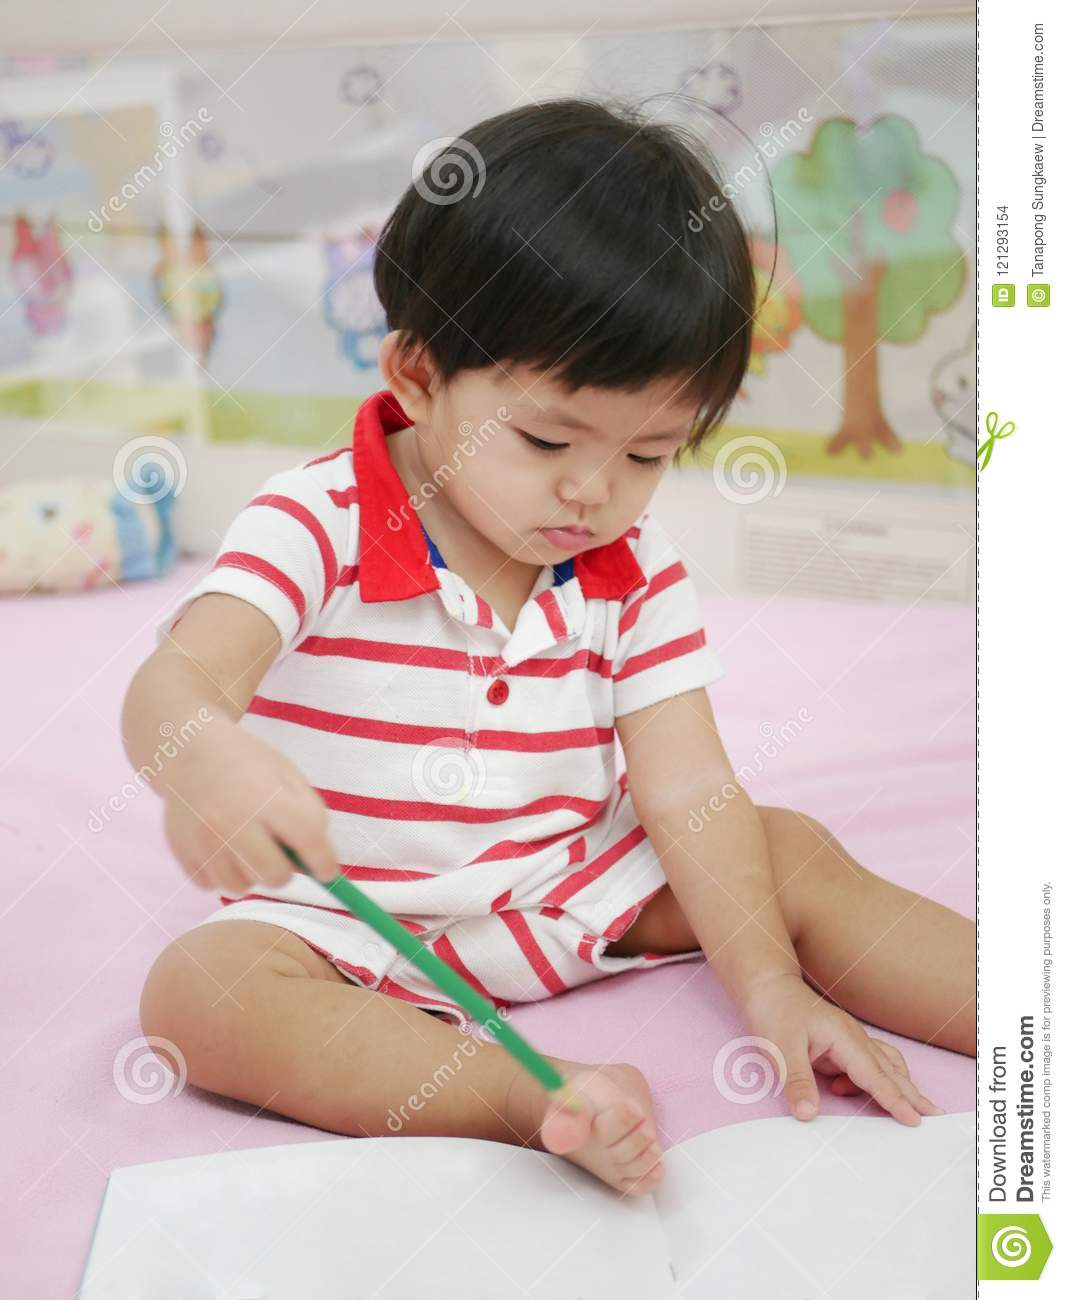 Little asian baby girl learning to hold a pencil and drawing on a